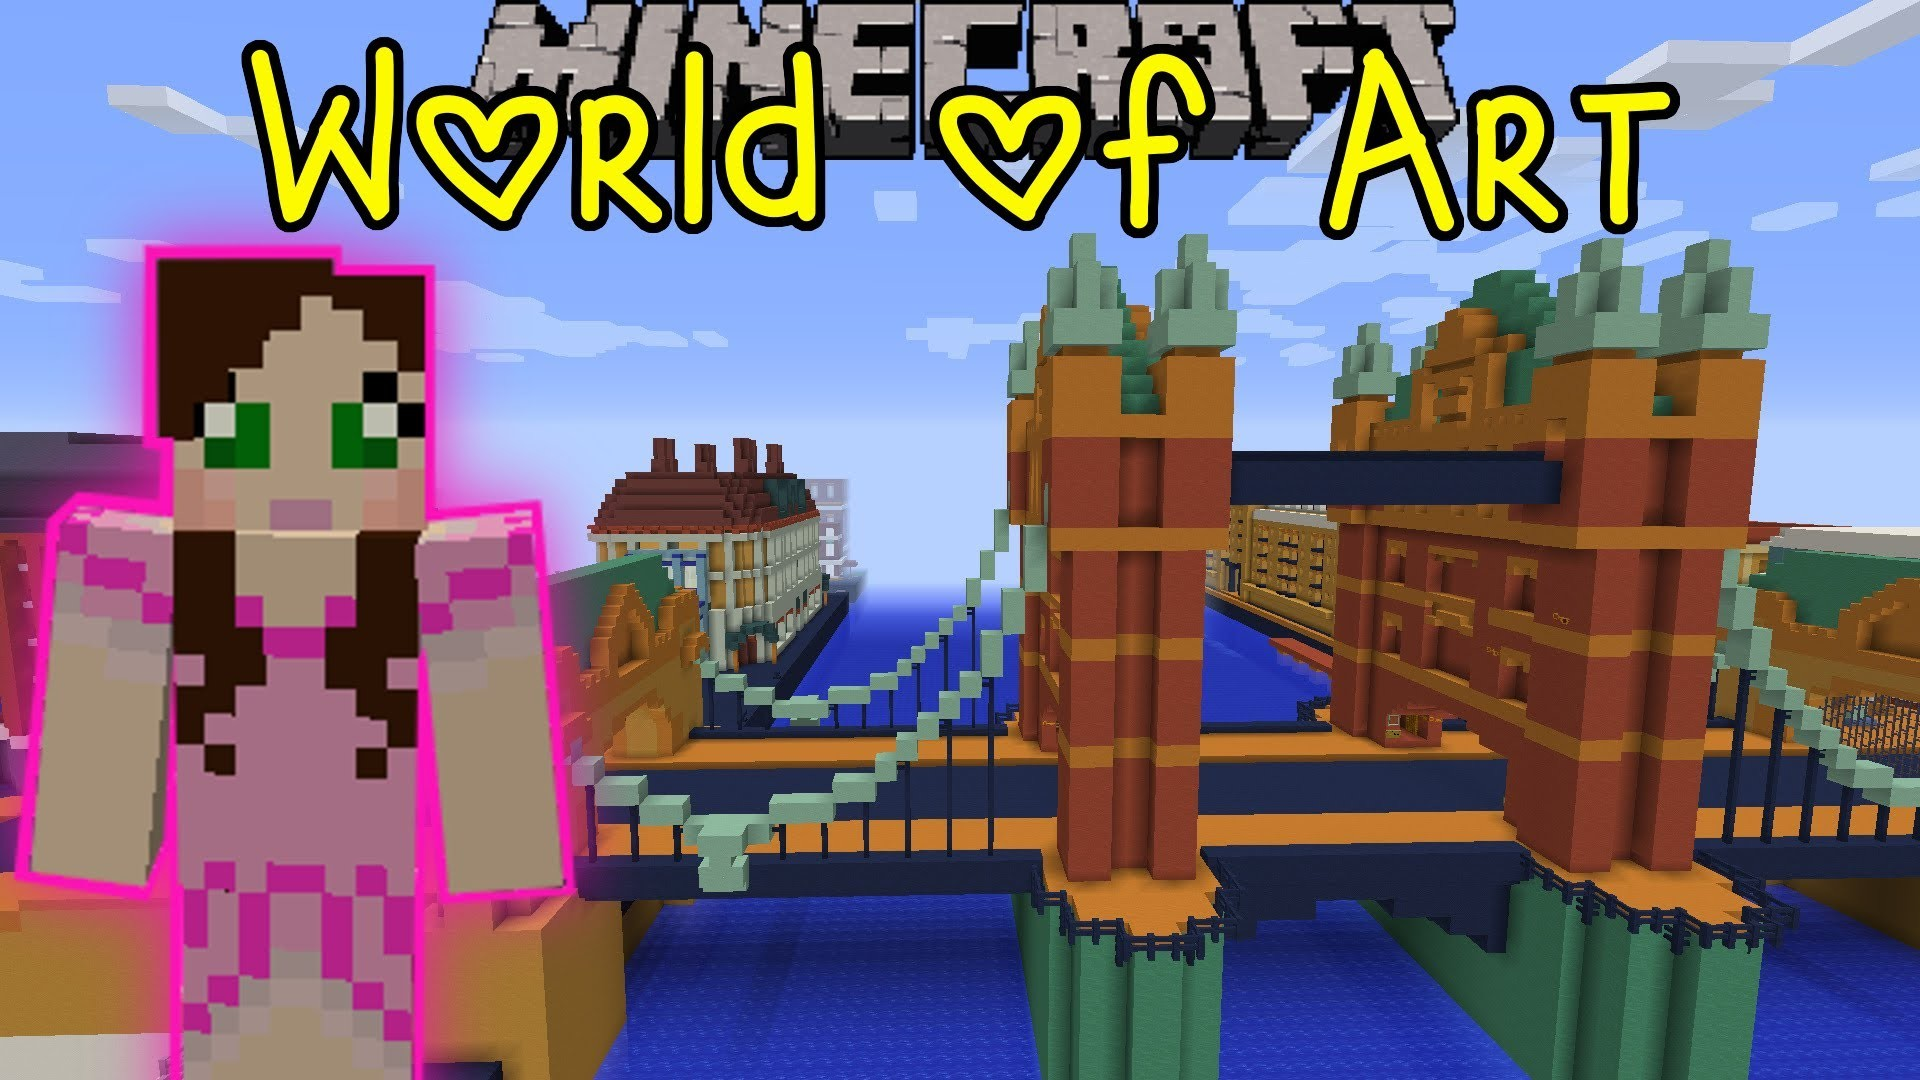 1920x1080 Pat And Jen Minecraft: World Of Art (Custom Map) Part 3 GamingWithJen